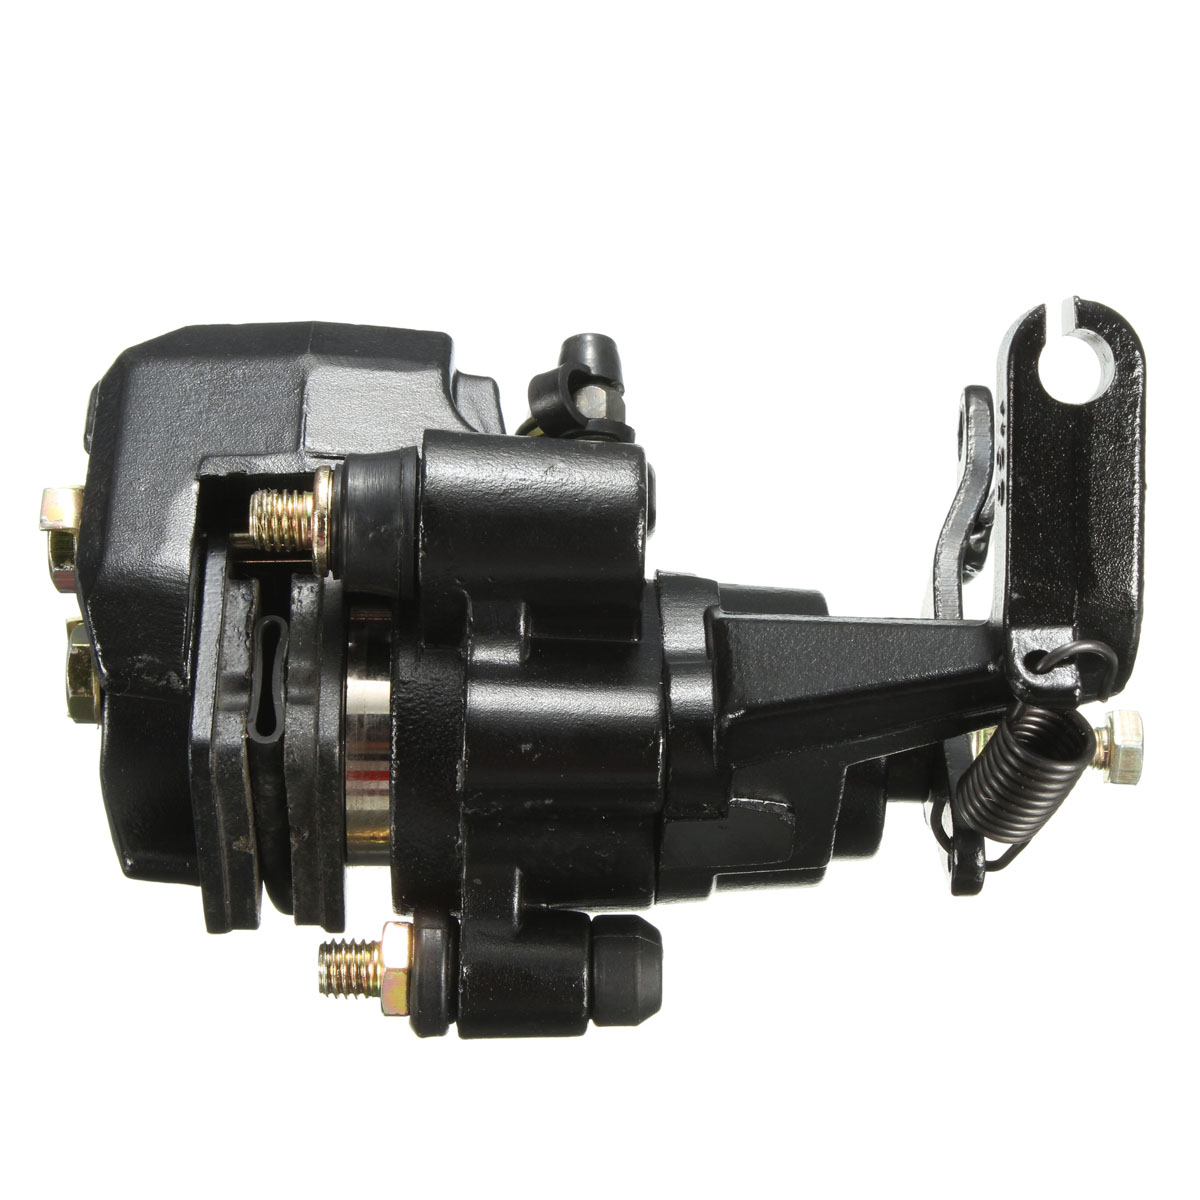 Car Rear Brake Caliper For Honda <font><b>ATC</b></font>/FOURTRAX250 /SPORTRAX300 TRX400EX/TRX <font><b>400</b></font> 300 200 400X 200X 250x 300EX 400EX image